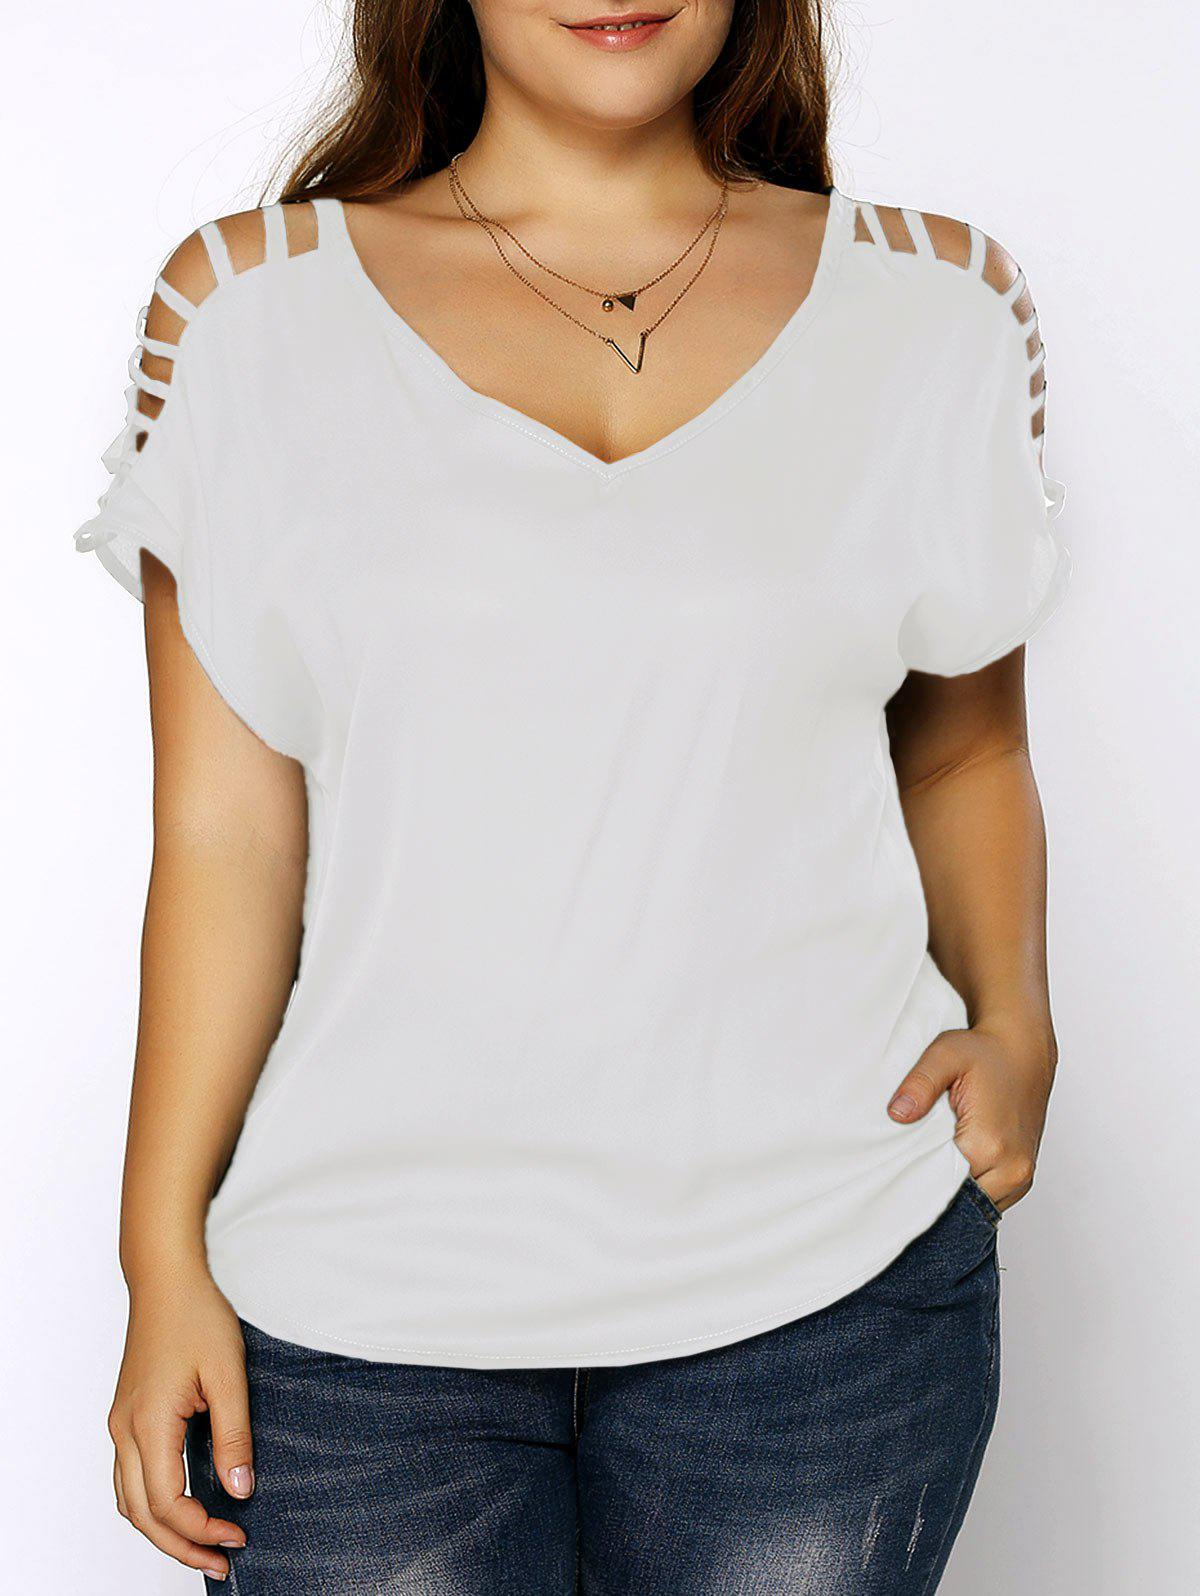 Plus Size V Neck Ripped Sleeve TeeWOMEN<br><br>Size: 5XL; Color: WHITE; Material: Cotton Blends,Polyester; Shirt Length: Regular; Sleeve Length: Short; Collar: V-Neck; Style: Fashion; Season: Summer; Pattern Type: Solid; Weight: 0.1700kg; Package Contents: 1 x T-Shirt;